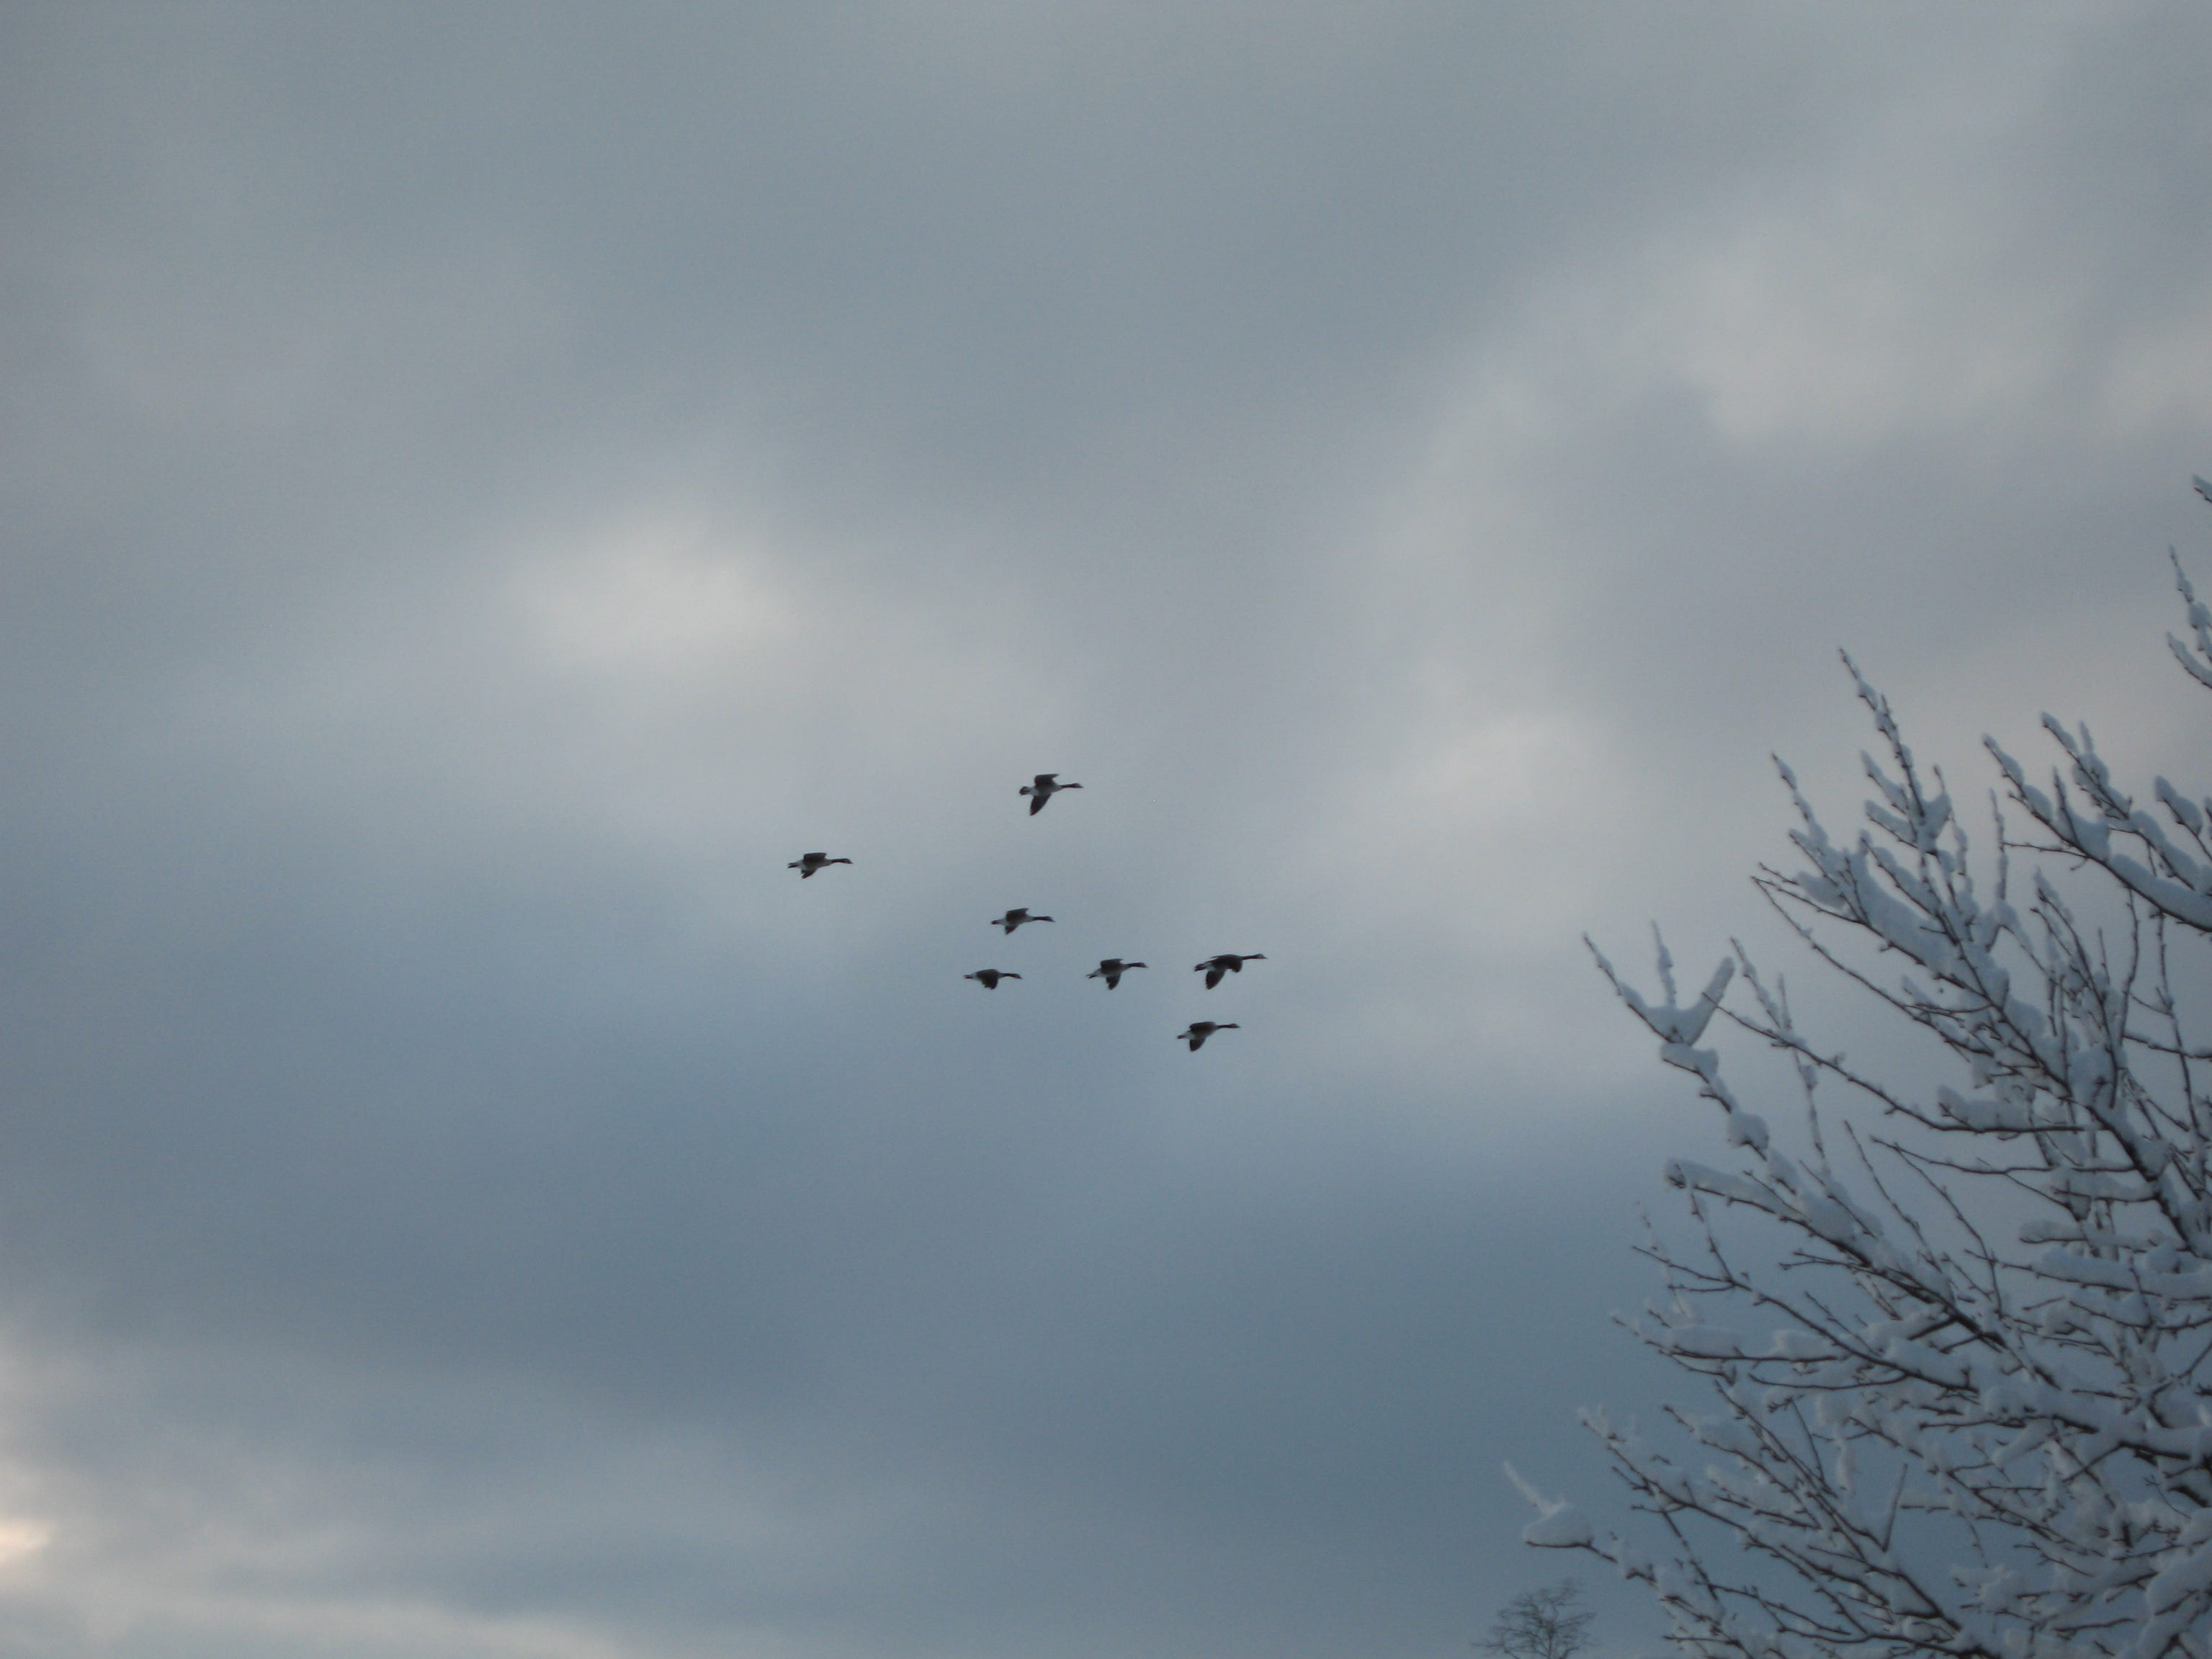 Geese over Wappingers (this) morning after snowfall